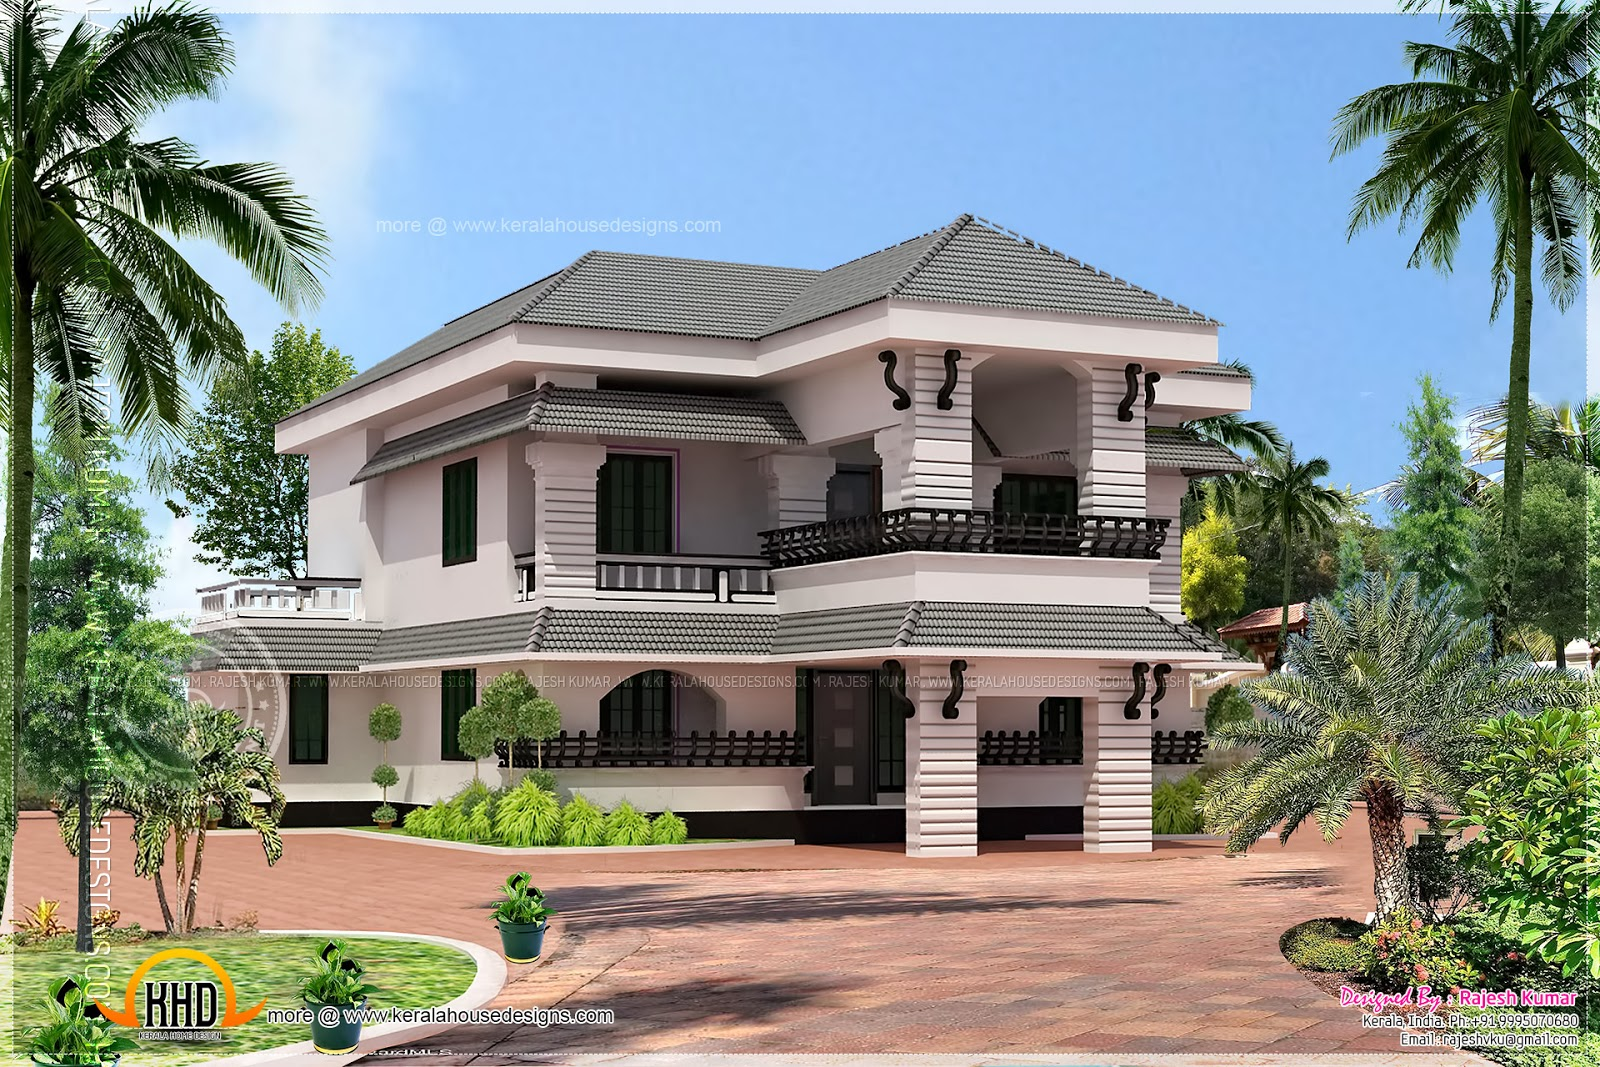 Malabar model home design kerala home design and floor plans for In home design